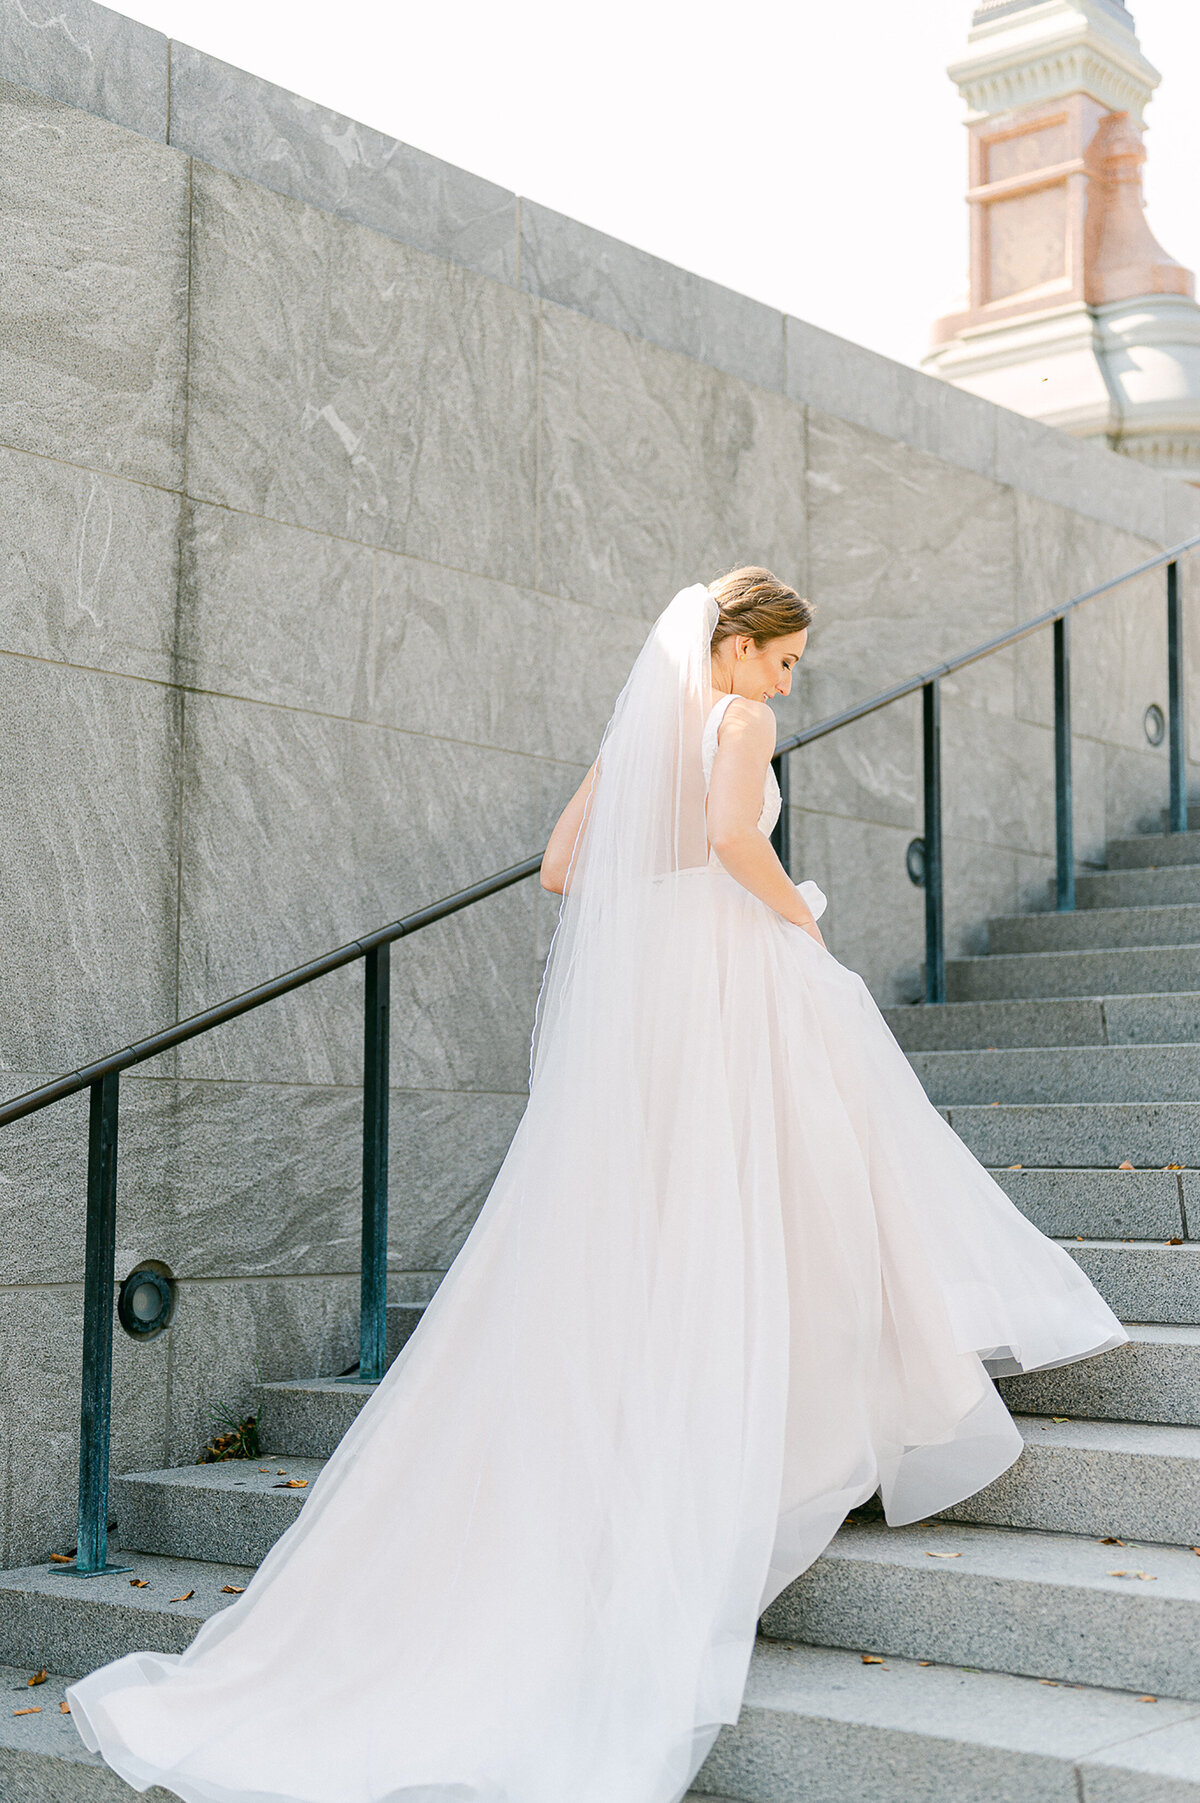 Jennifer Bosak Photography - DC Area Wedding Photography - DC, Virginia, Maryland - Jeanna + Michael - Decatur House Wedding - 69